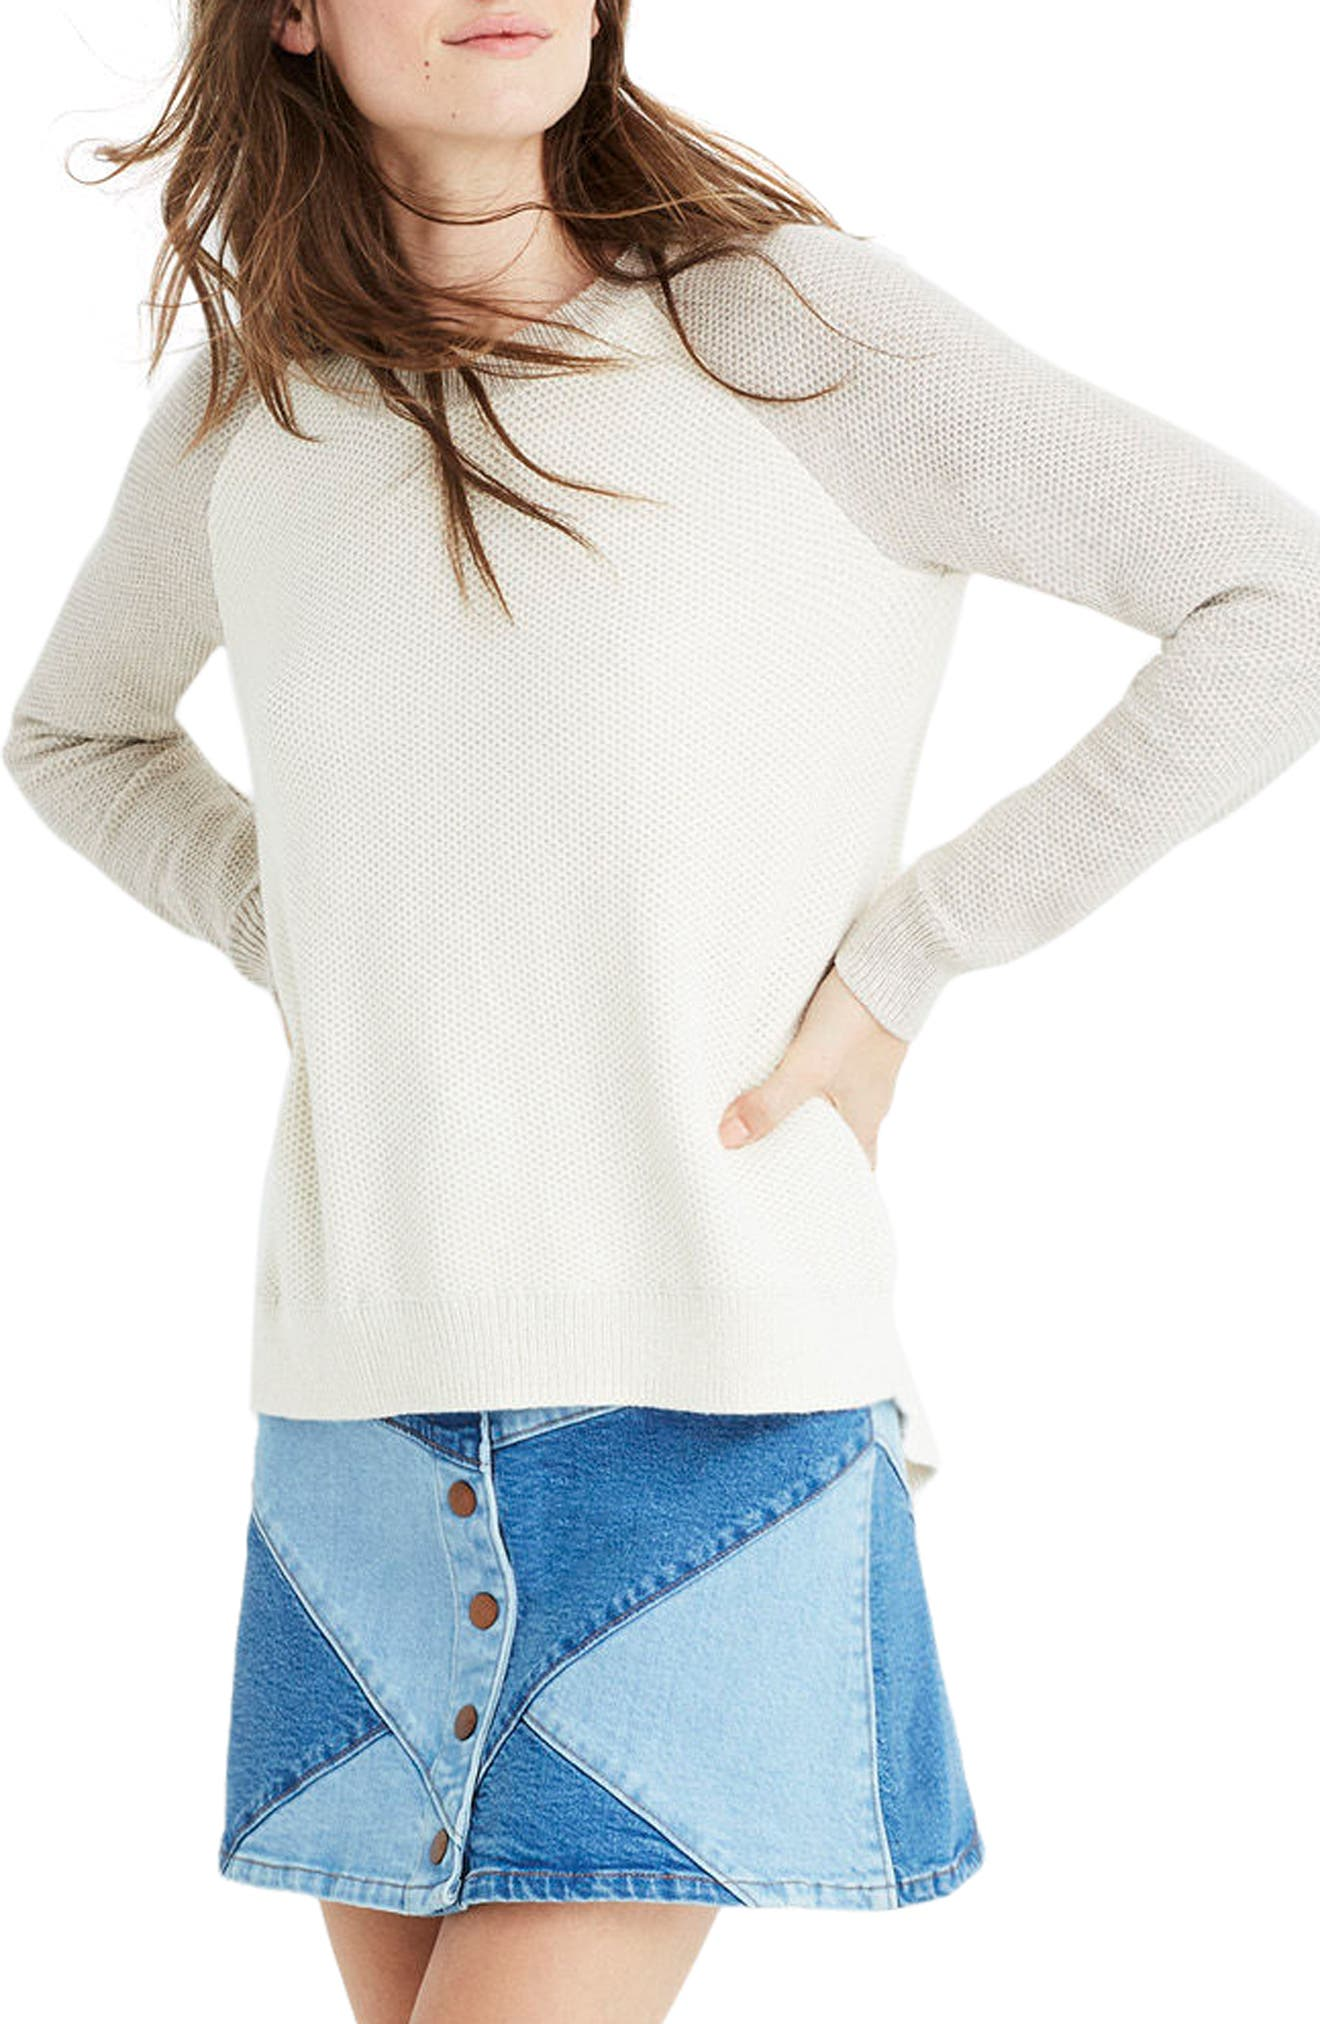 Alternate Image 1 Selected - Madewell Crossback Sweater